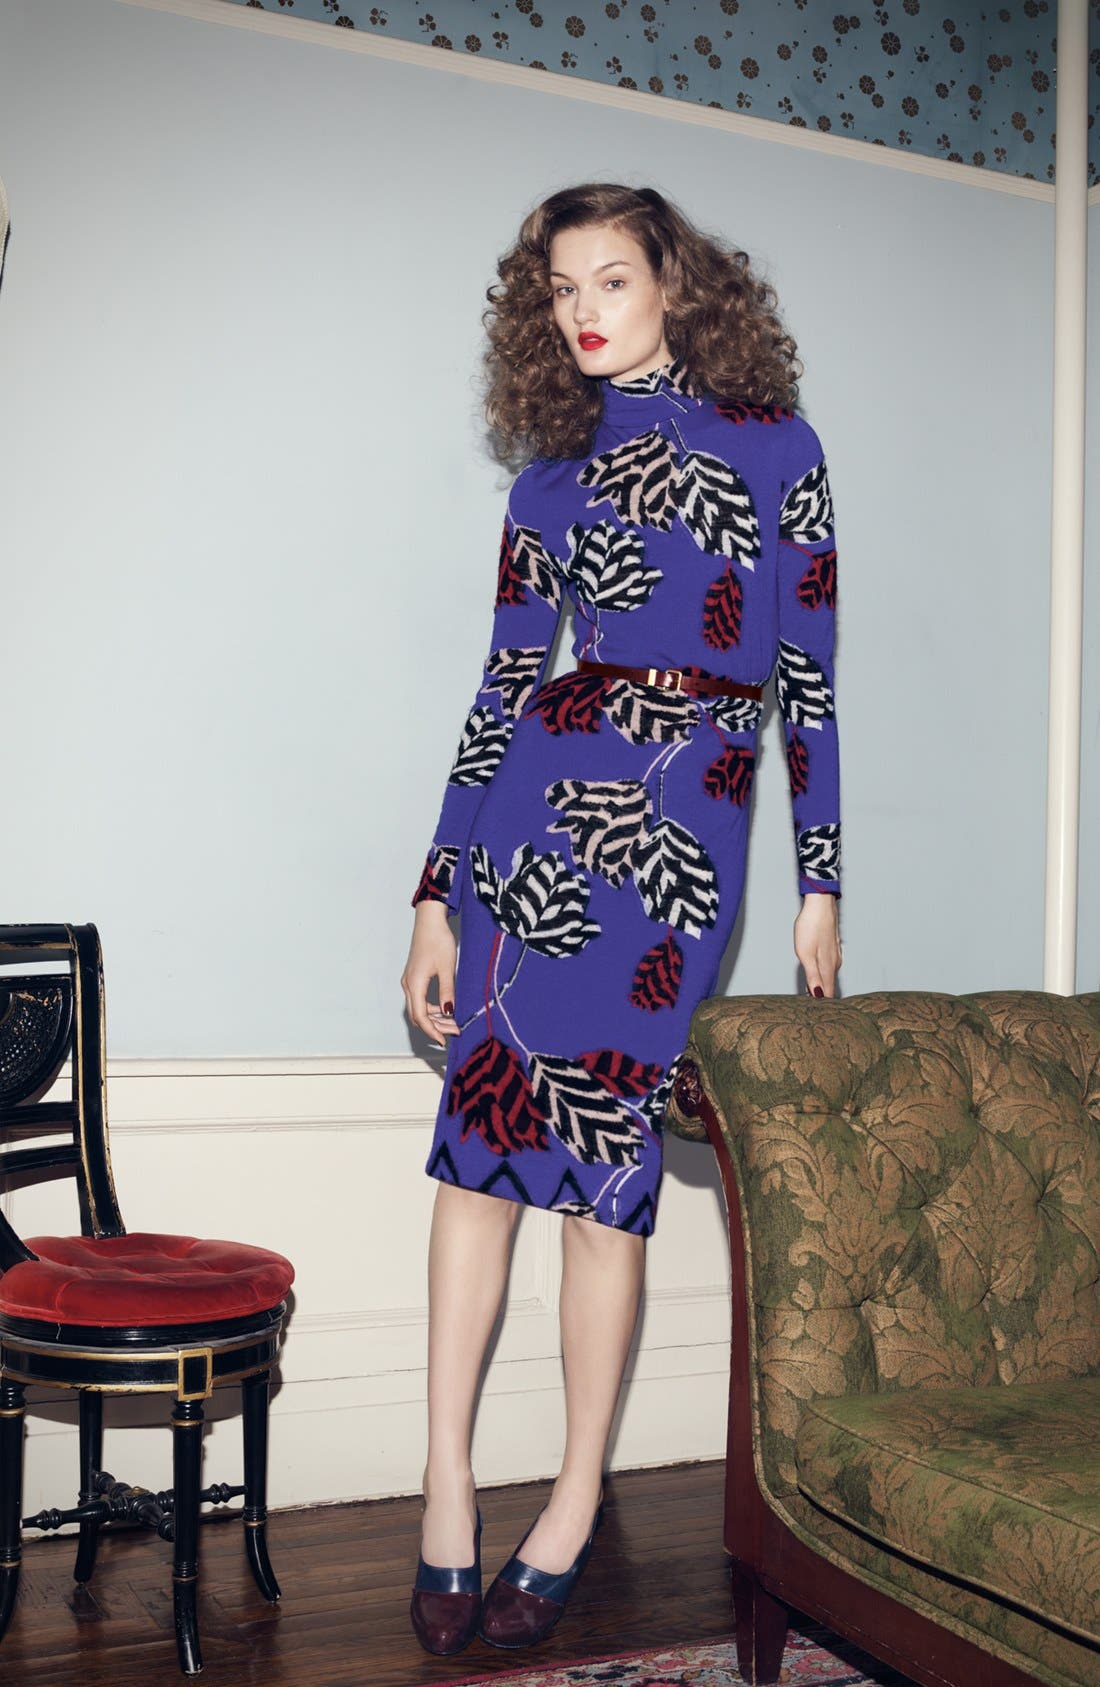 Alternate Image 1 Selected - MARC BY MARC JACOBS Sweater Dress & Accessories